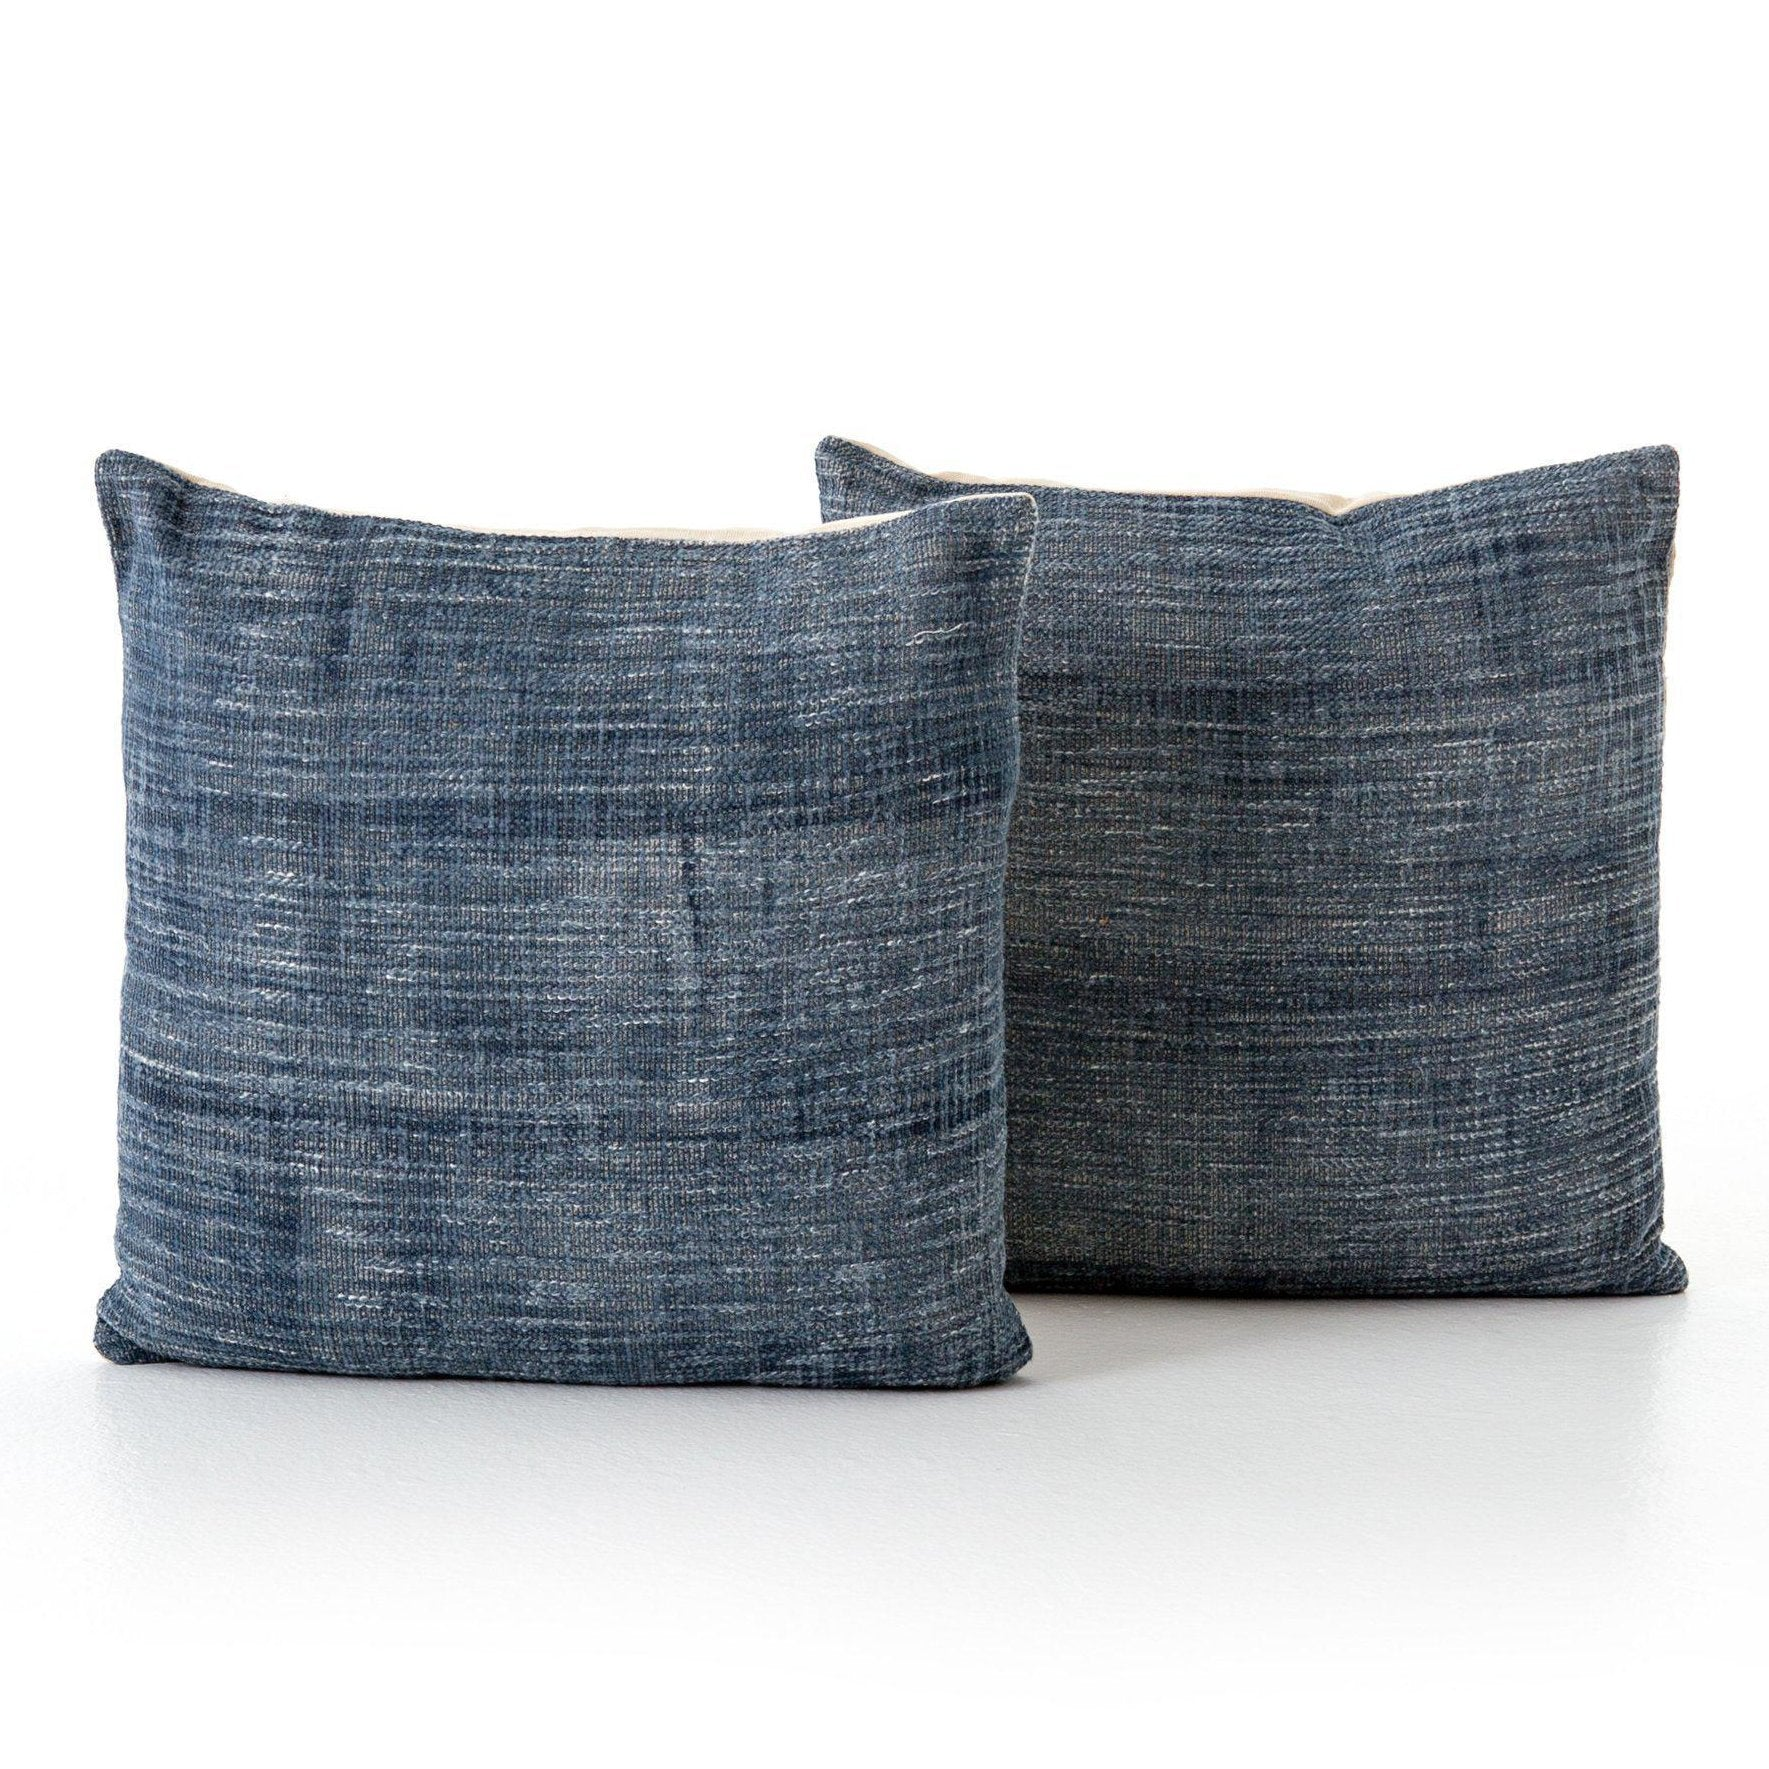 Willow FADED BLUE HAZE PILLOW, SET OF 2 - 20